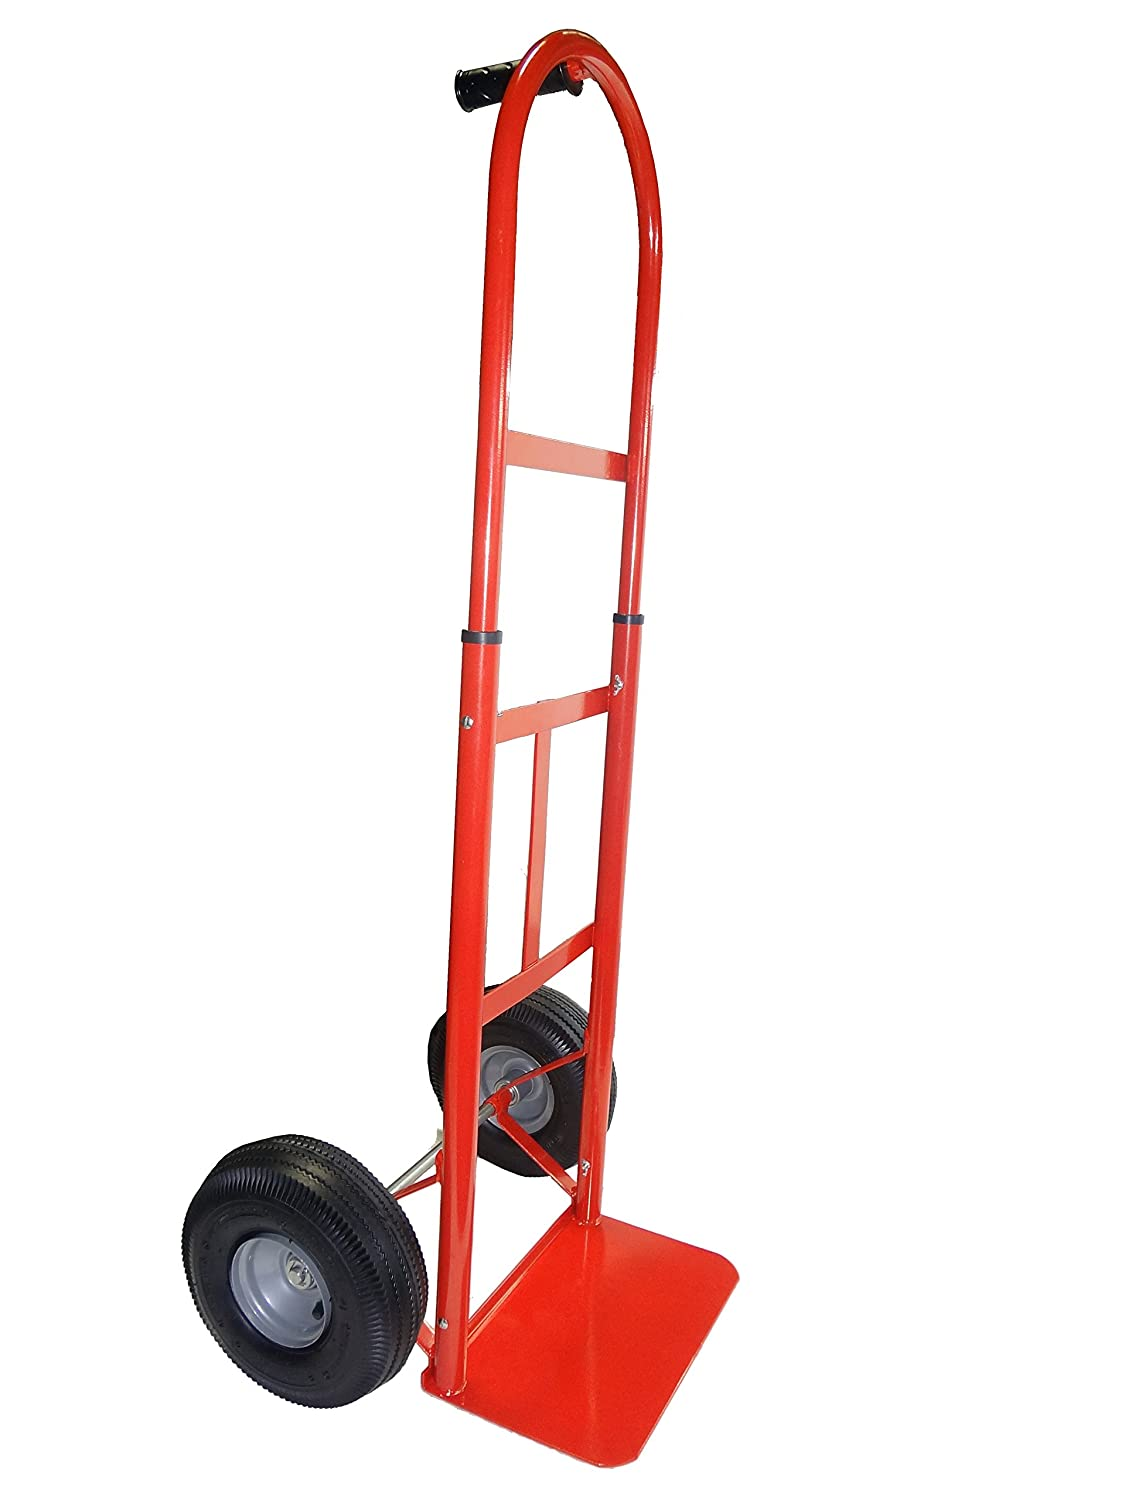 19.25 Width Meco Omaha 434R Round Drum Dolly 19.25 Length 5.25 Height 19.25 Width 19.25 Length 5.25 Height